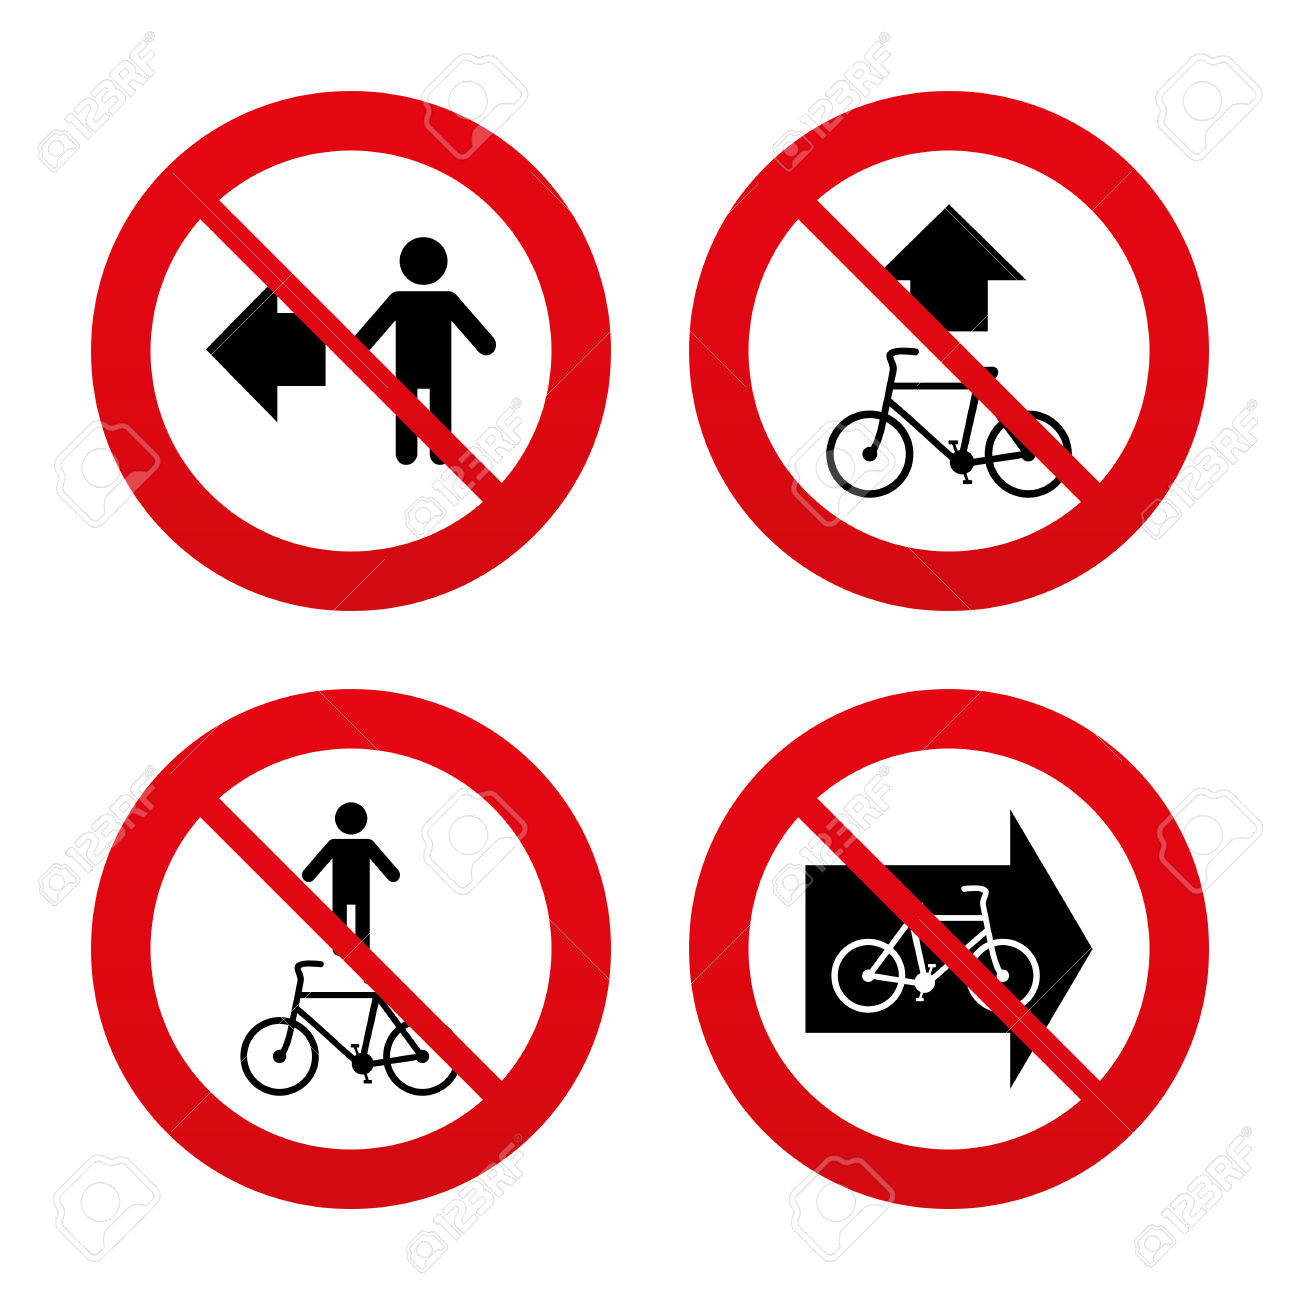 No, Ban Or Stop Signs. Pedestrian Road Icon. Bicycle Path Trail.